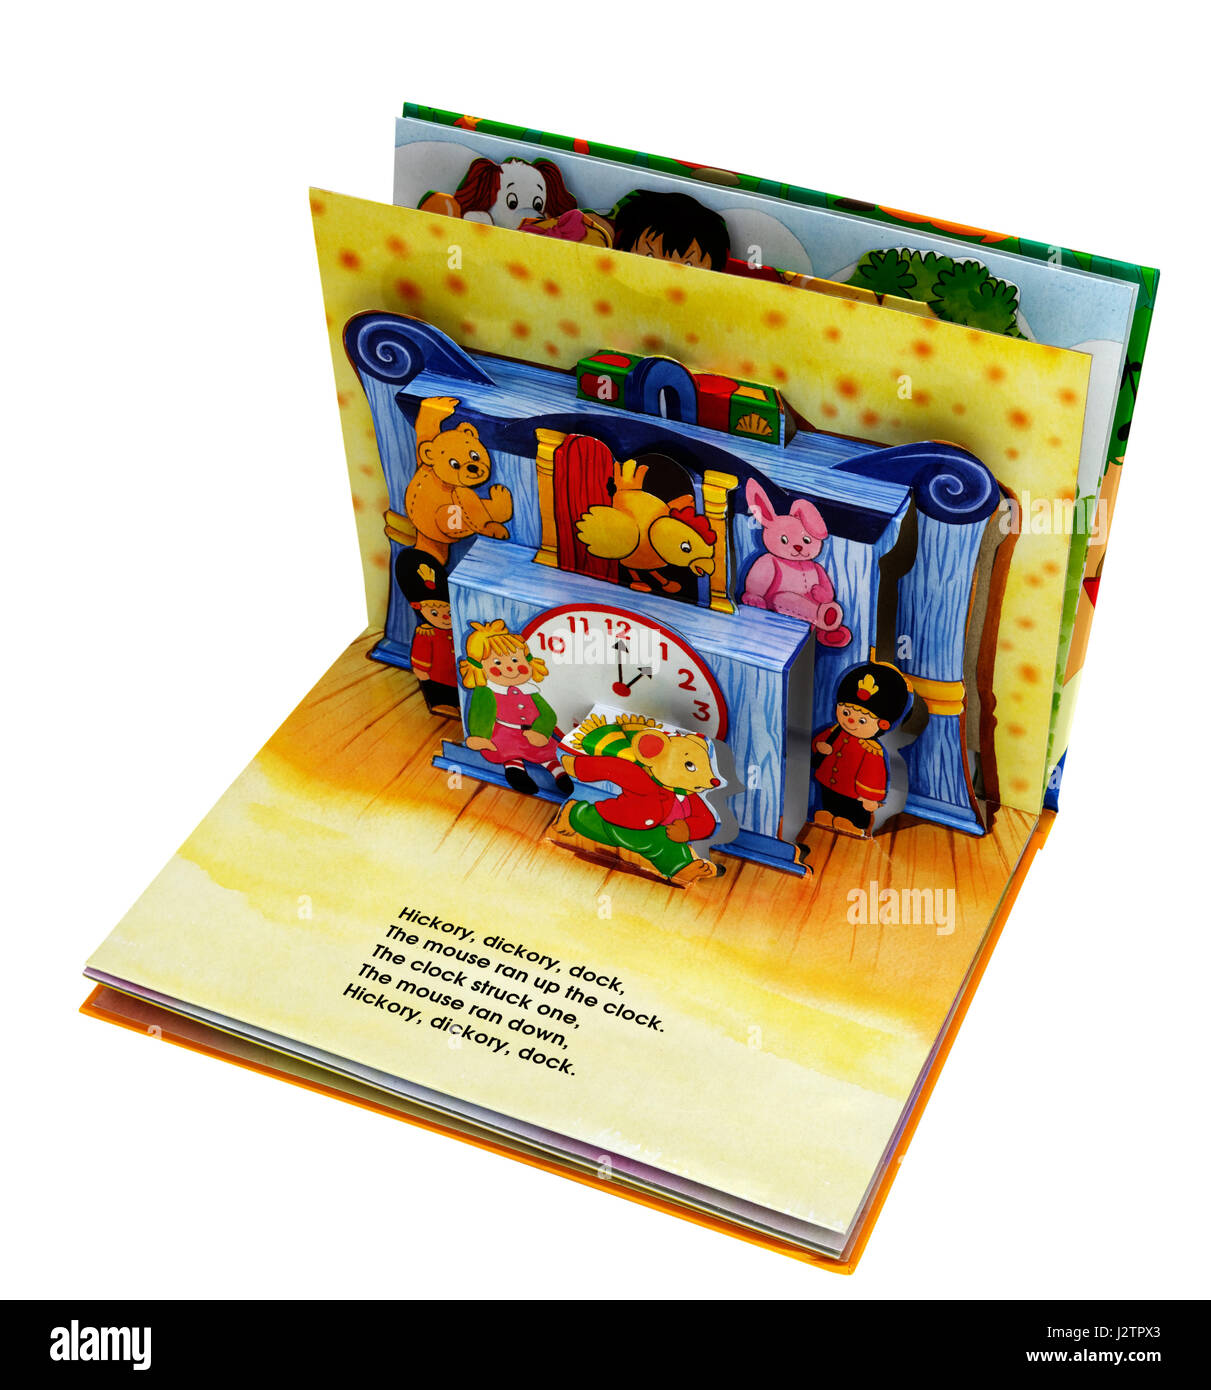 The nursery rhyme Hickory Dickory Dock in a pop-up book of